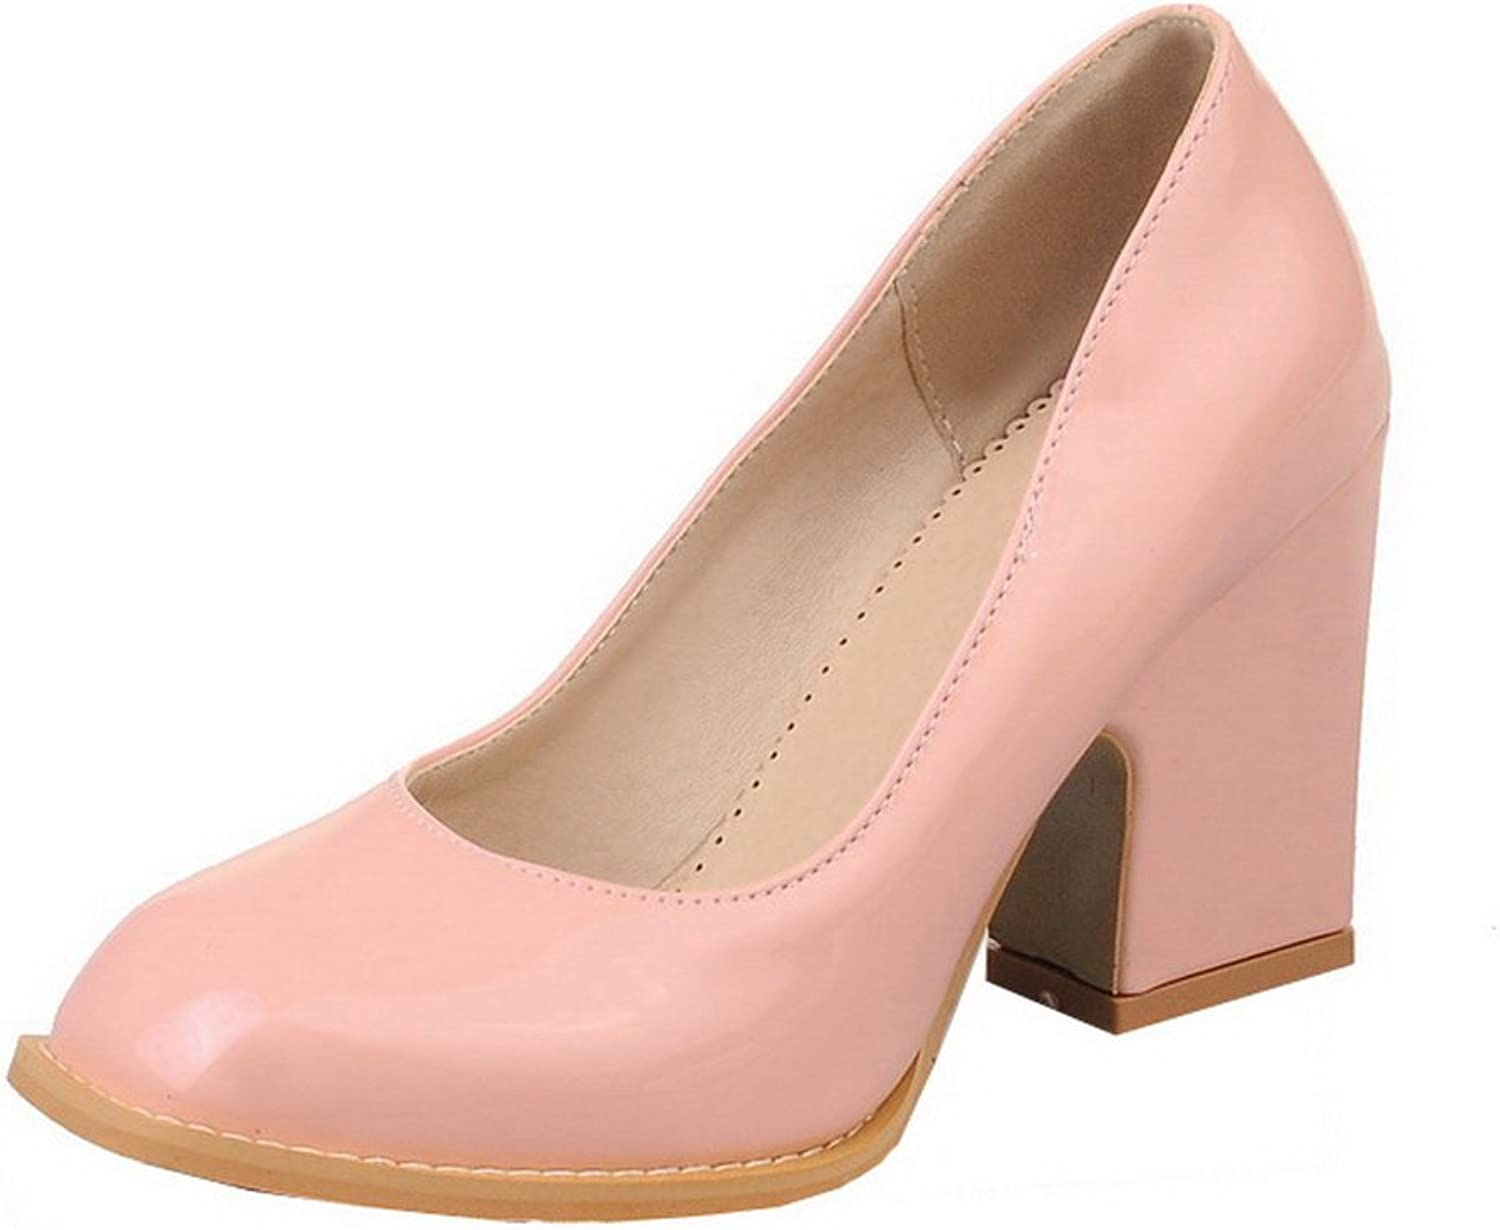 WeenFashion Women's High-Heels Patent Leather Solid Square Toe Pumps-shoes